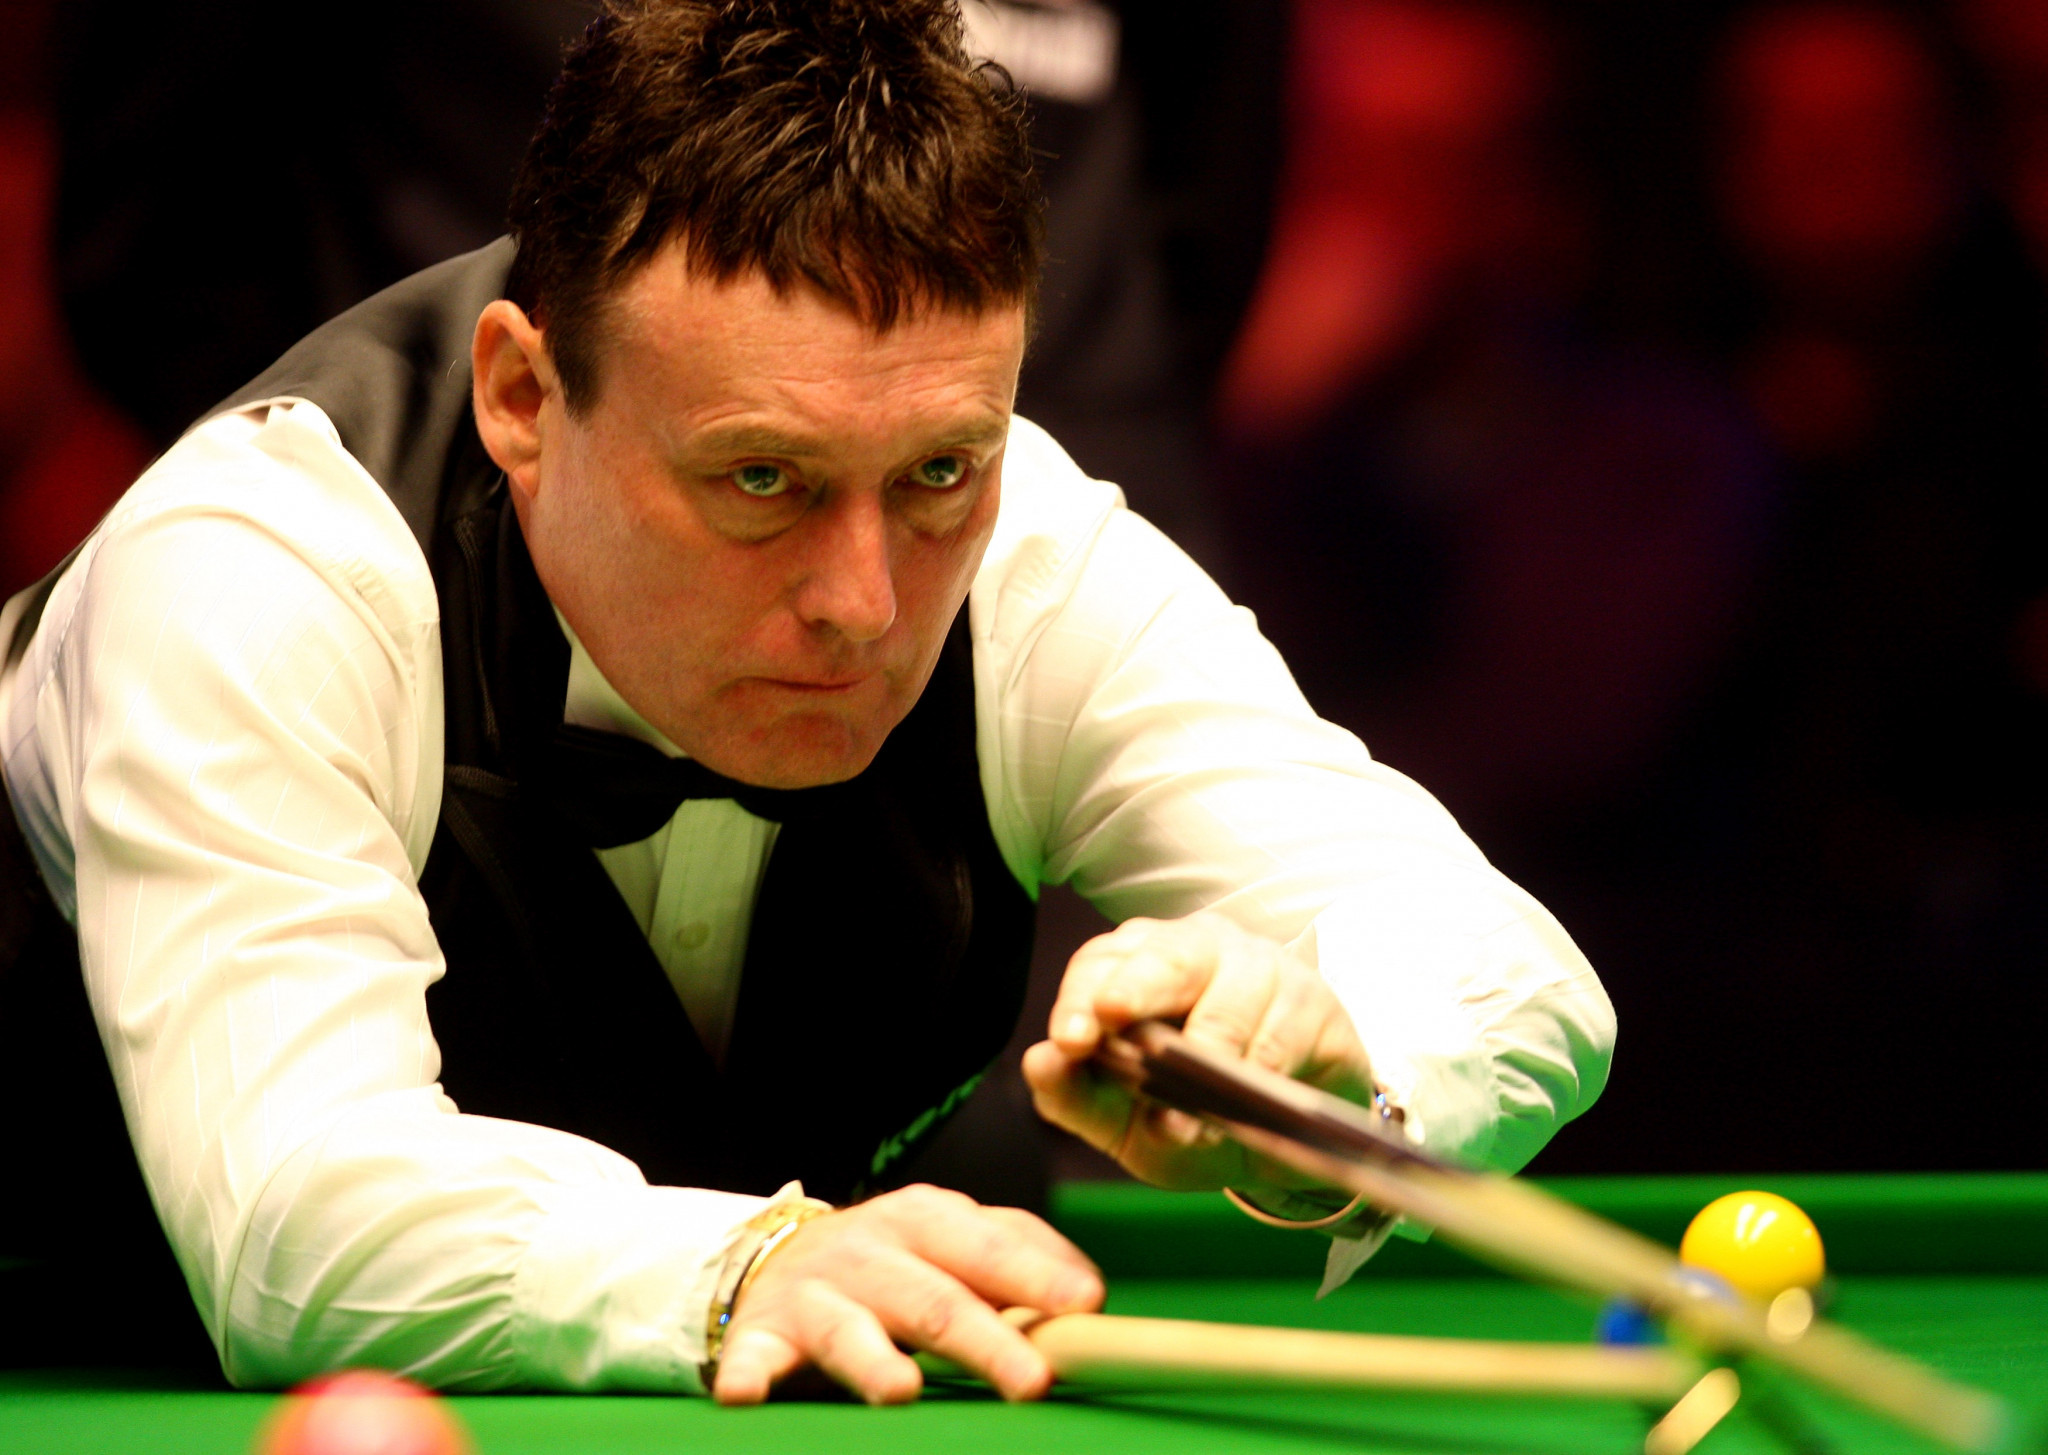 Sheffield's Crucible Theatre to stage new World Seniors Snooker Championship